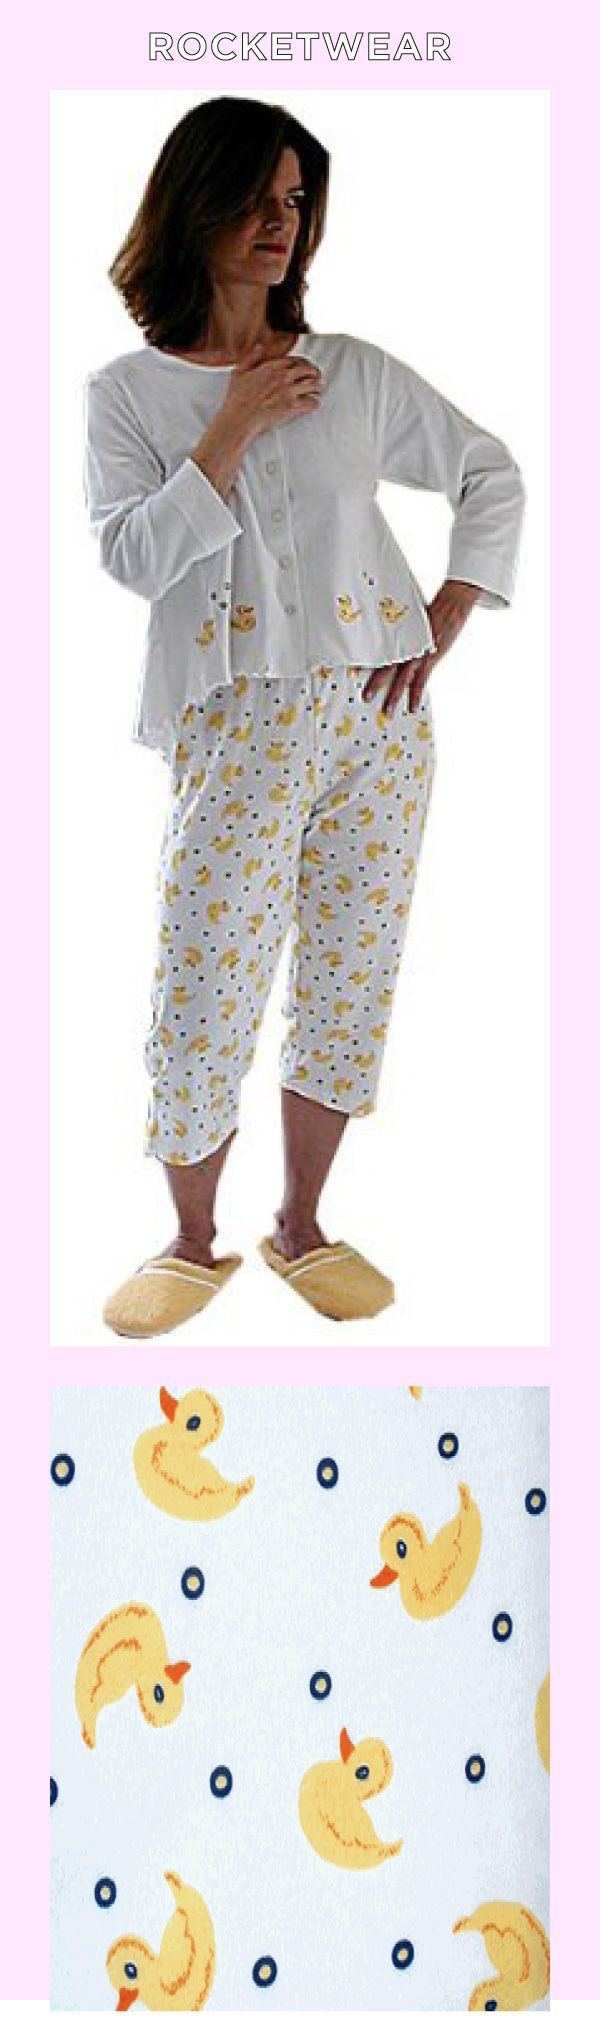 RocketWear Women's Rubber Duck Print Long Sleeve Button Front Cotton Knit Capri Pajamas (Large) Made by #RocketWear Color #White and Yellow. Sizes run as follows: S(6-8), M(10-12), L(14-16), XL(18). Capri pajamas fits petite and tall bodies. Vibrant colors and detailed finishings hold up with repeated washings. Contemporary in attitude in a true missy fit. Makes a great gift!